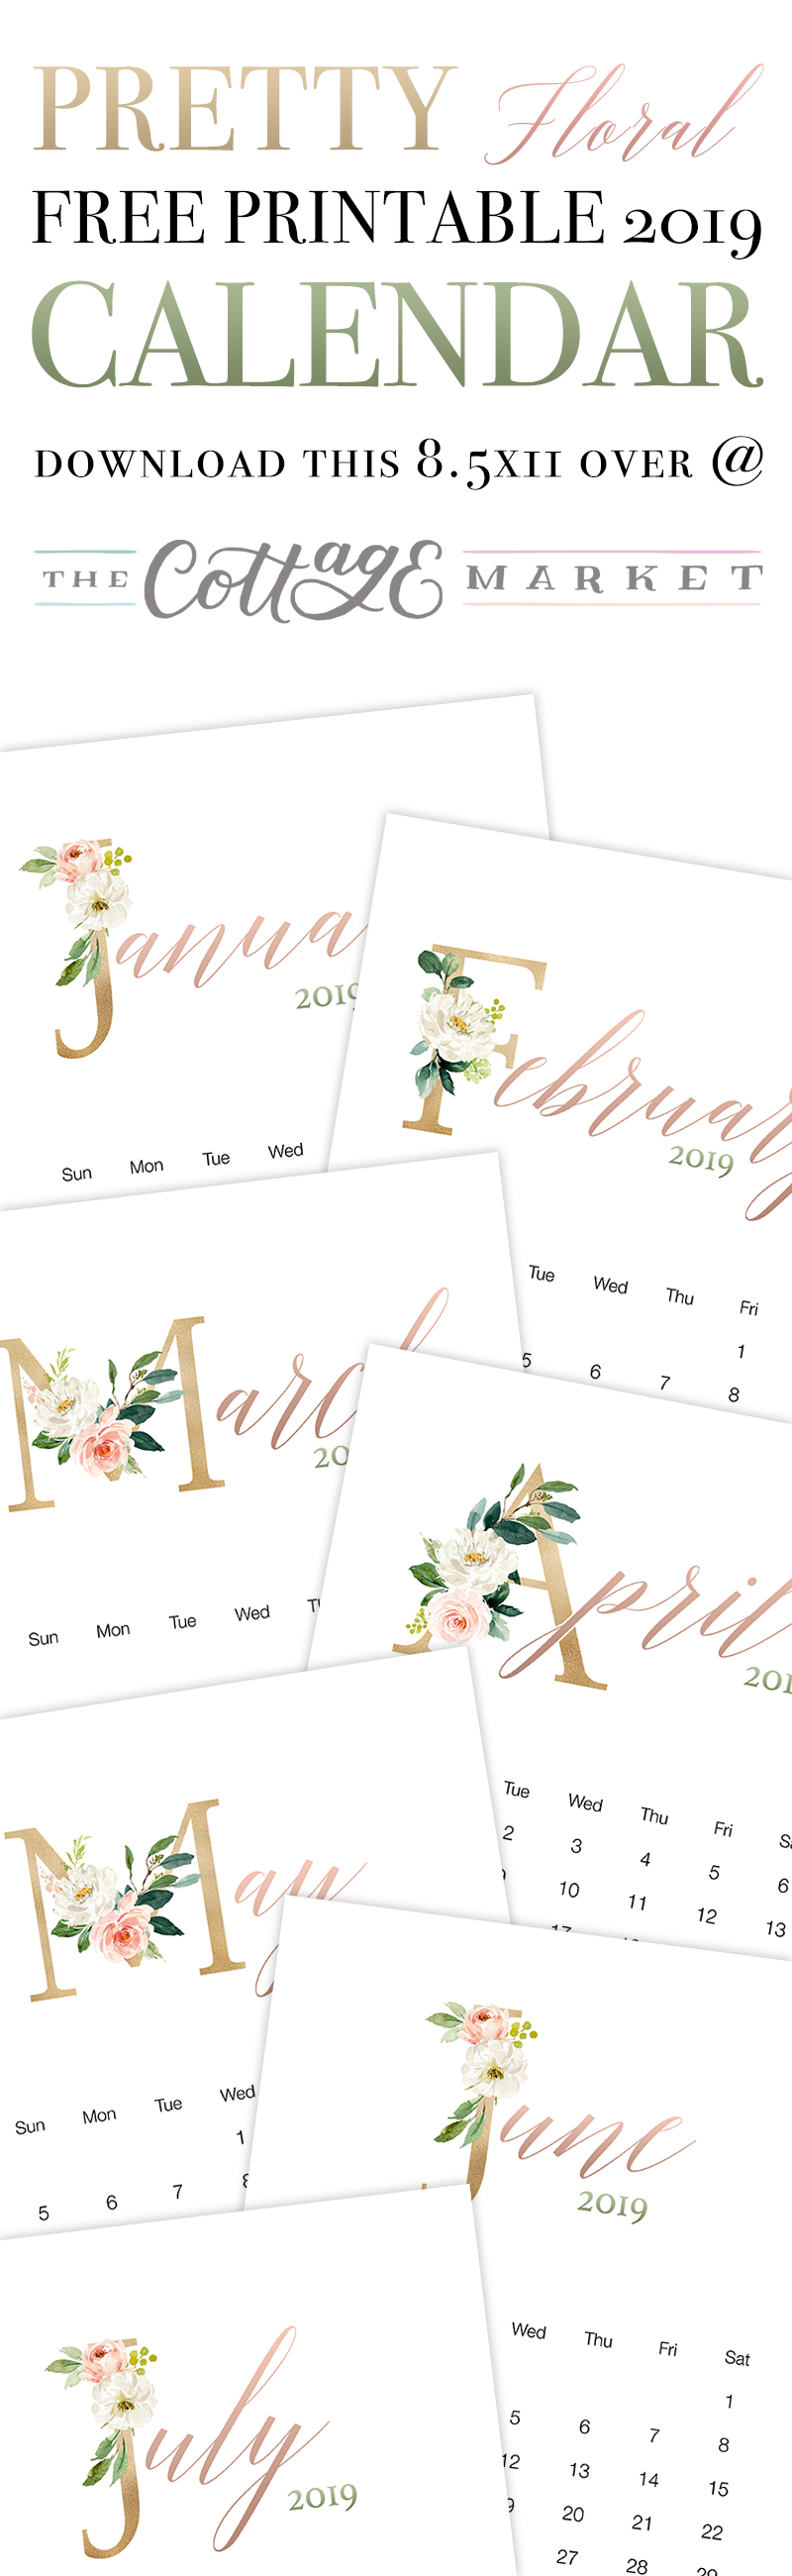 A Pretty Floral Free Printable Calendar is just what your Farmhouse Needs!